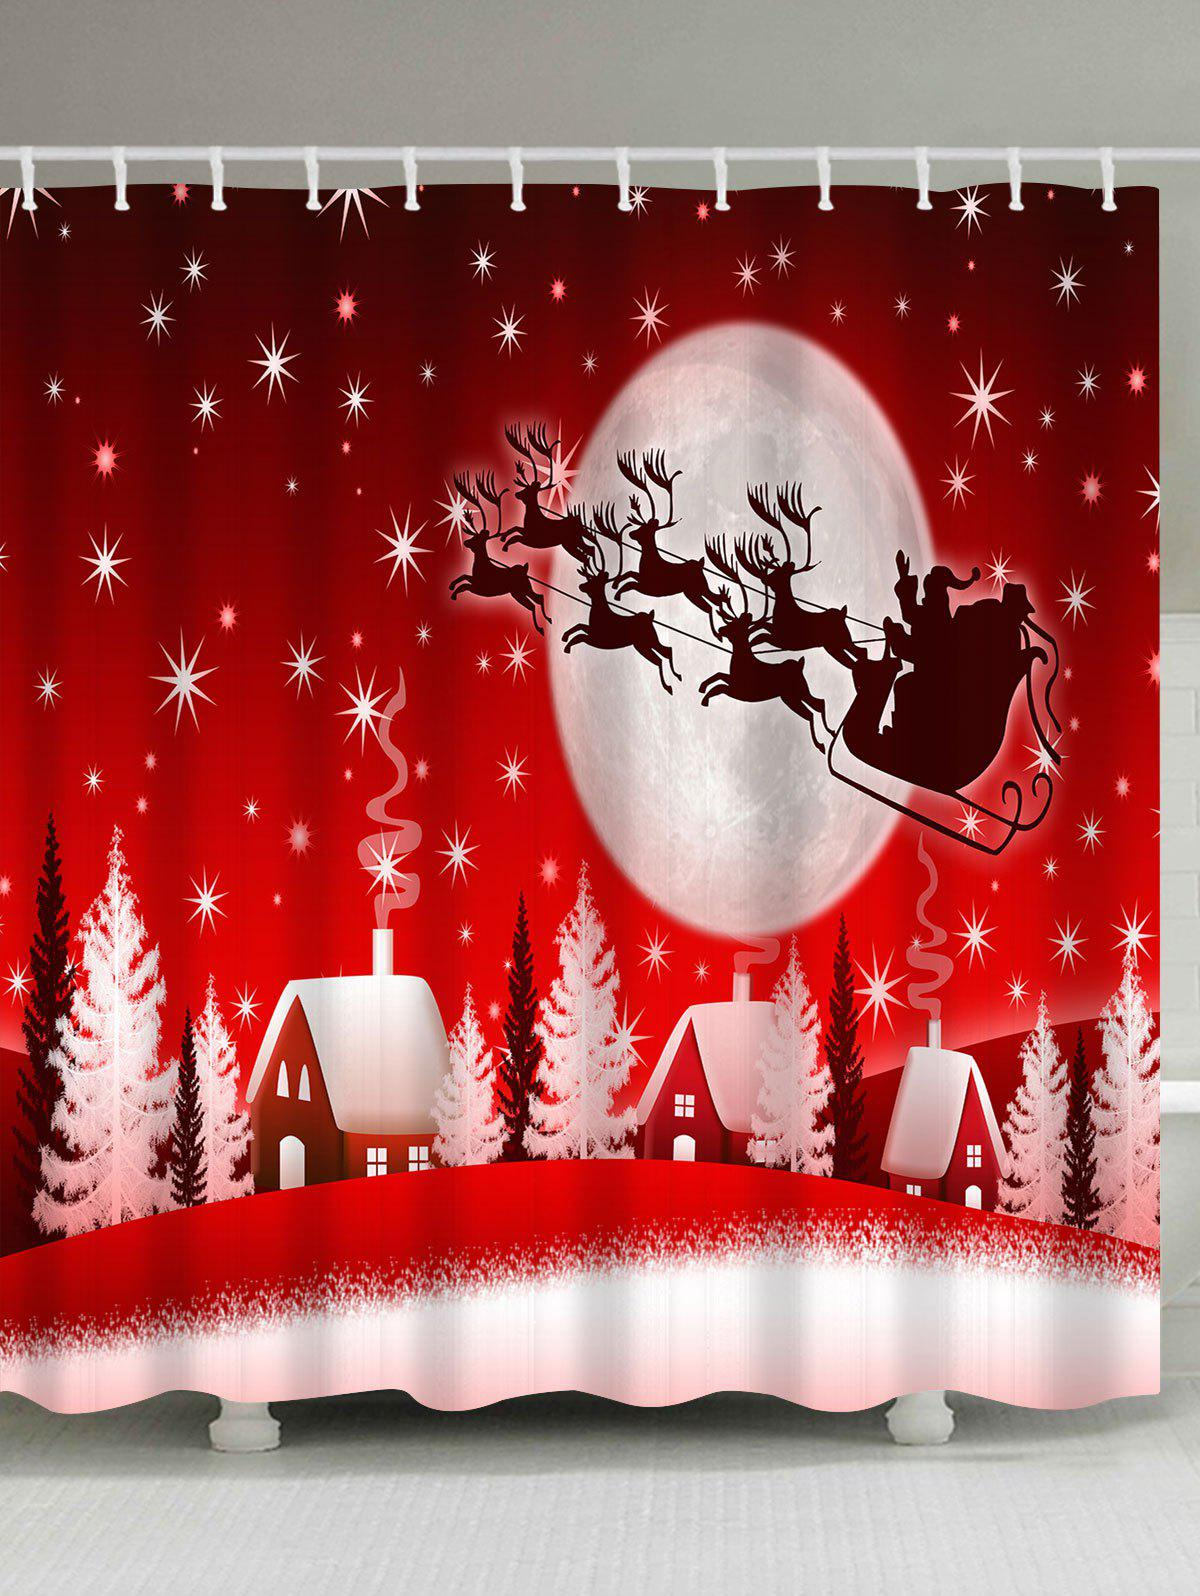 Christmas Sled Moon House Waterproof Bath CurtainHOME<br><br>Size: W71 INCH * L71 INCH; Color: RED; Products Type: Shower Curtains; Materials: Polyester; Pattern: Moon; Style: Festival; Number of Hook Holes: W59 inch*L71 inch: 10; W71 inch*L71 inch: 12; W71 inch*L79 inch: 12; Package Contents: 1 x Shower Curtain 1 x Hooks (Set);